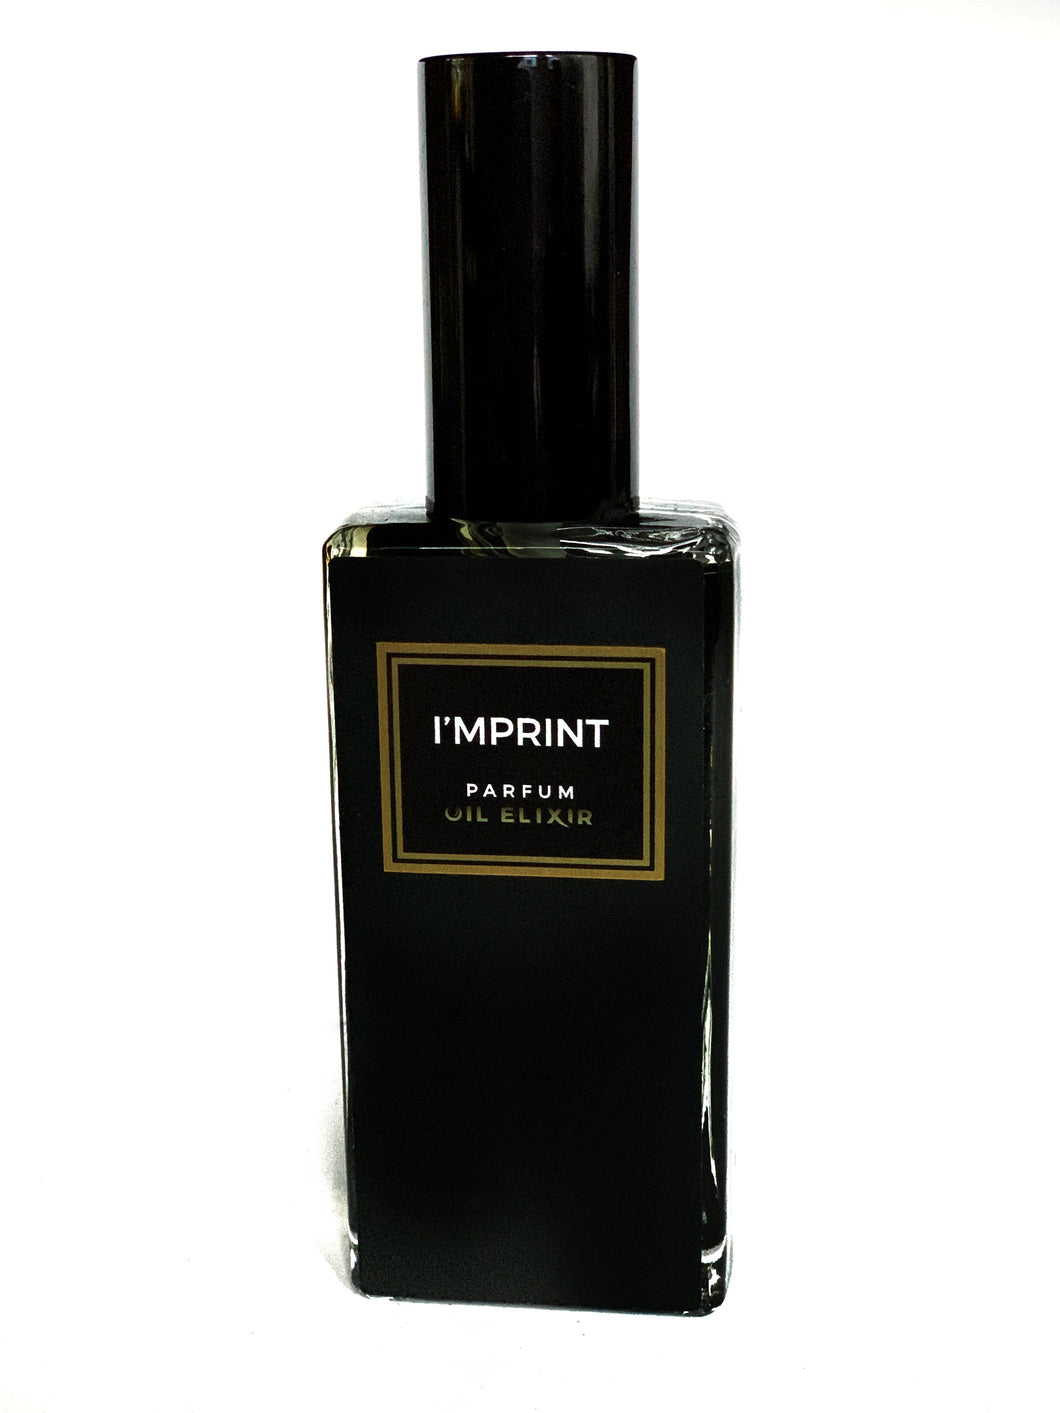 I`mprint Parfum OIL ELIXIR 50 ml - 1.69 fl. oz.